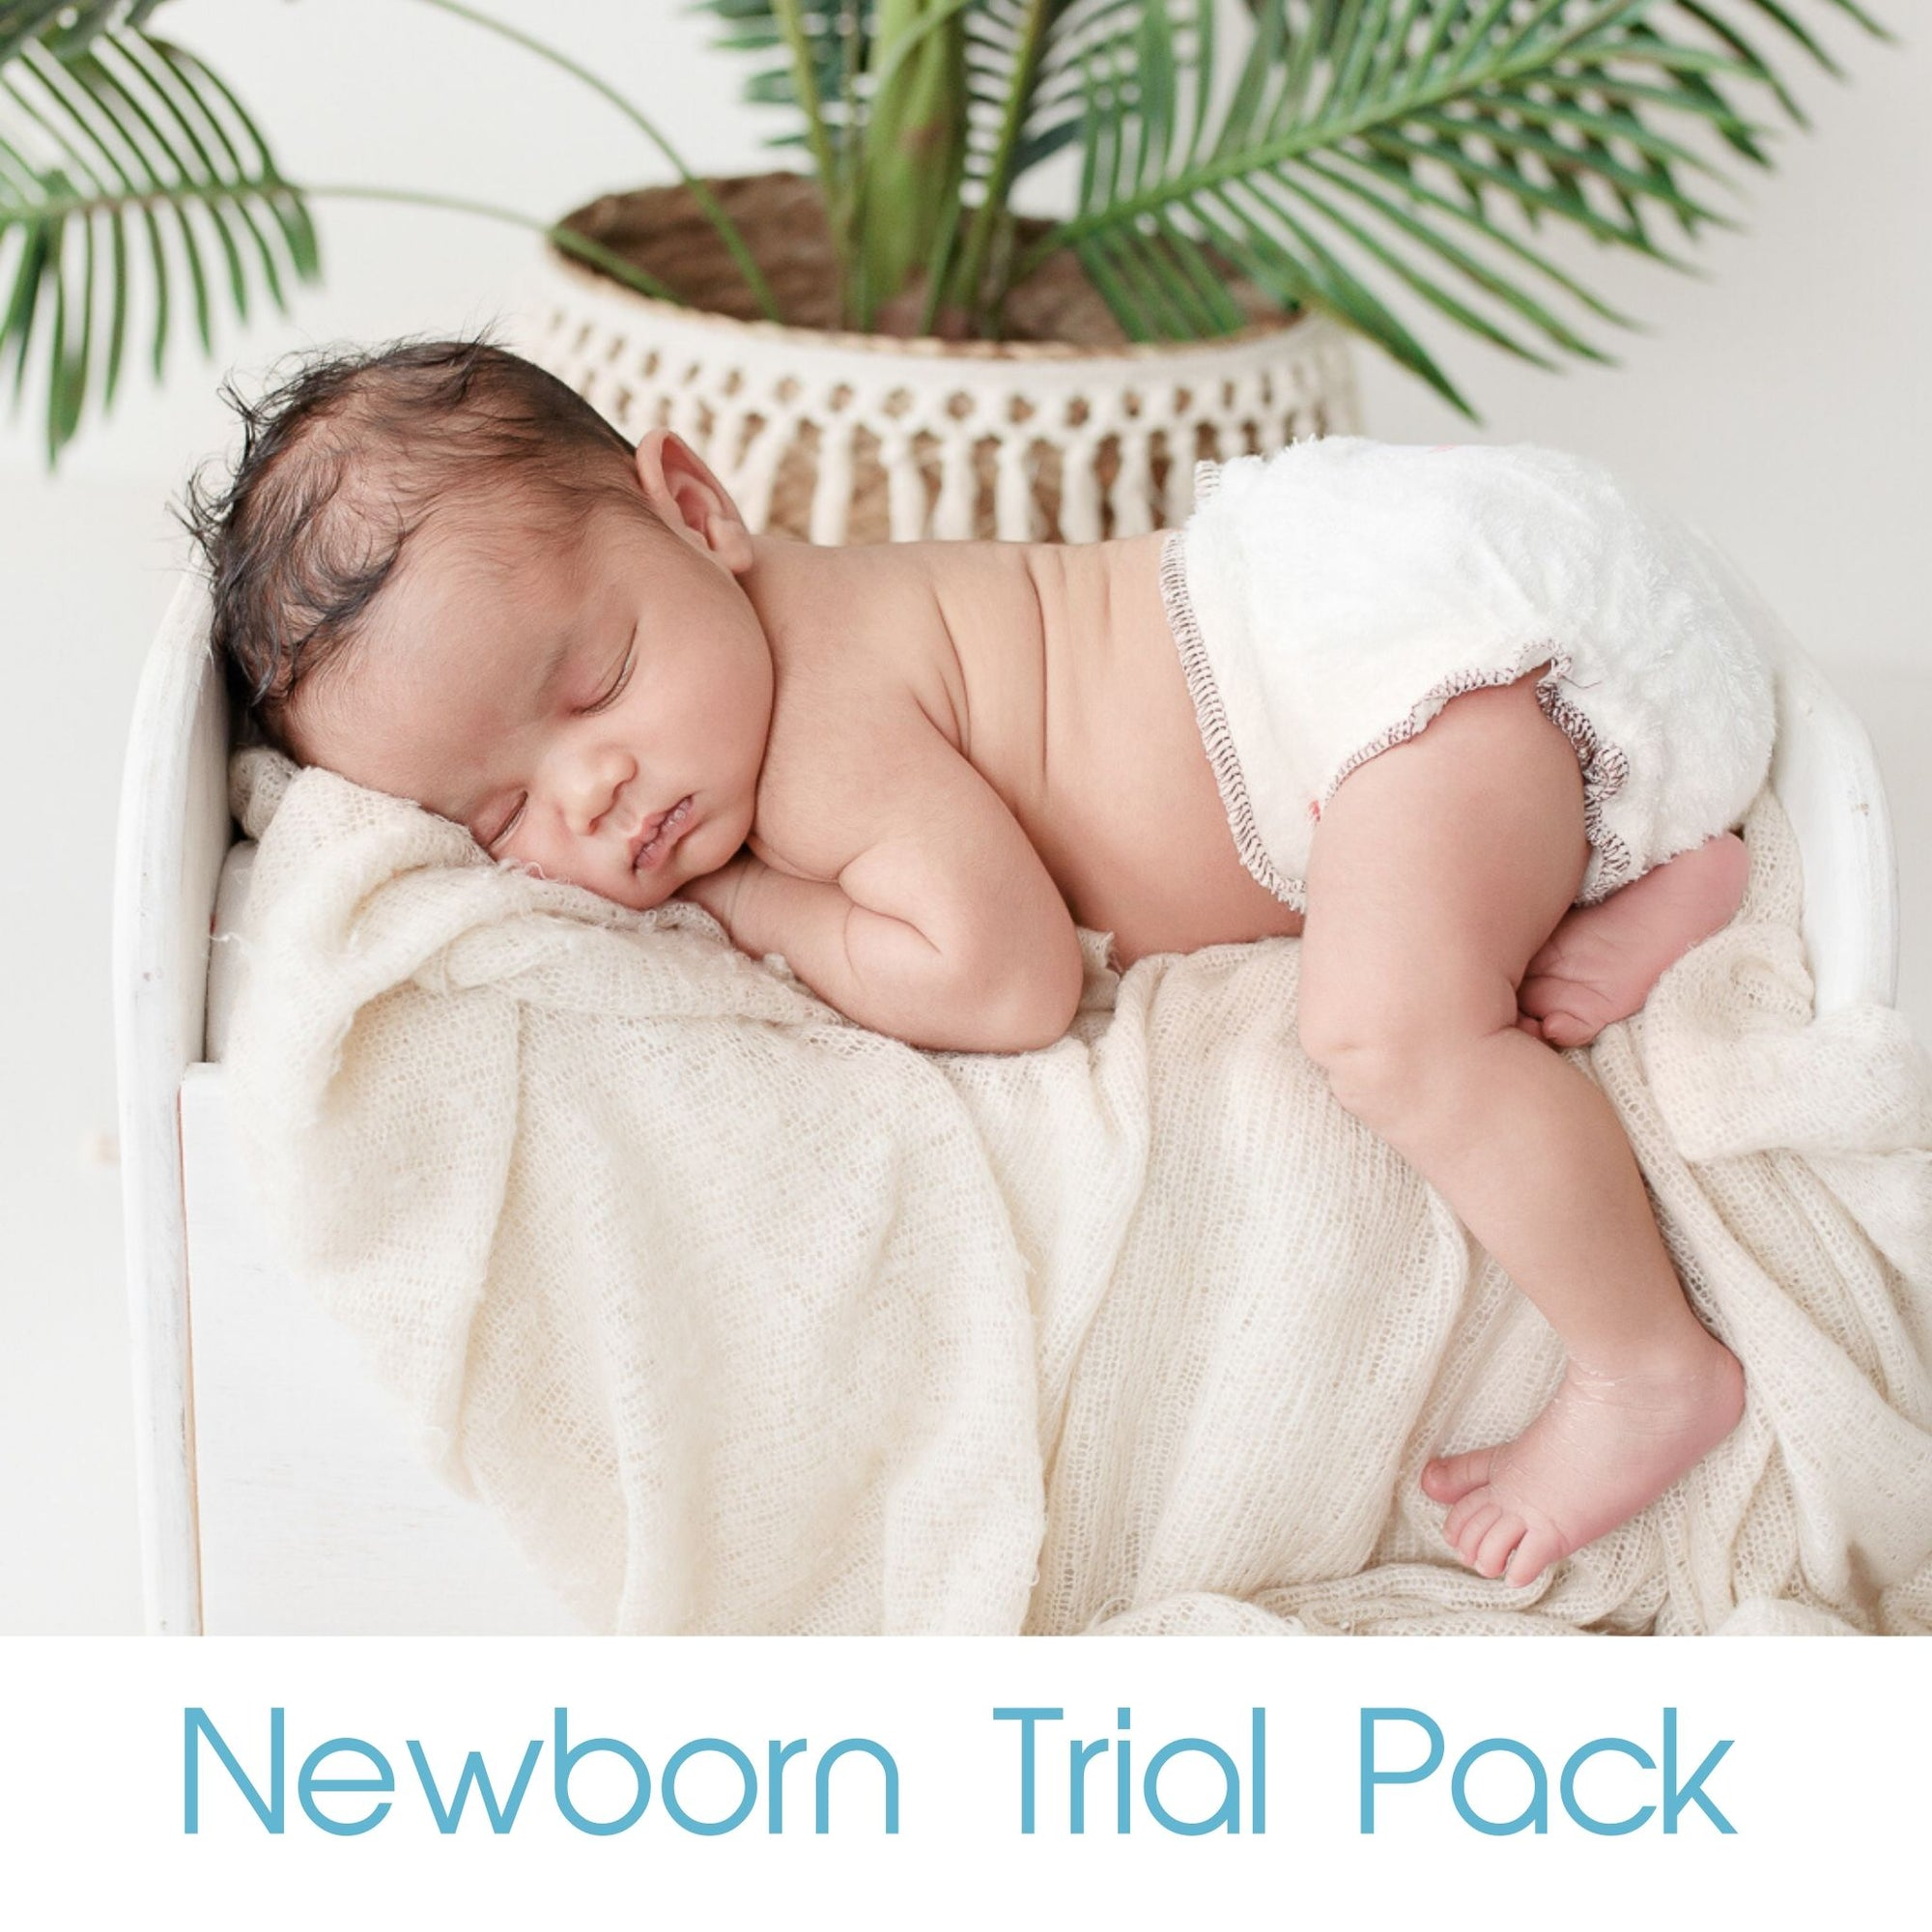 Newborn Mixed Trial Pack